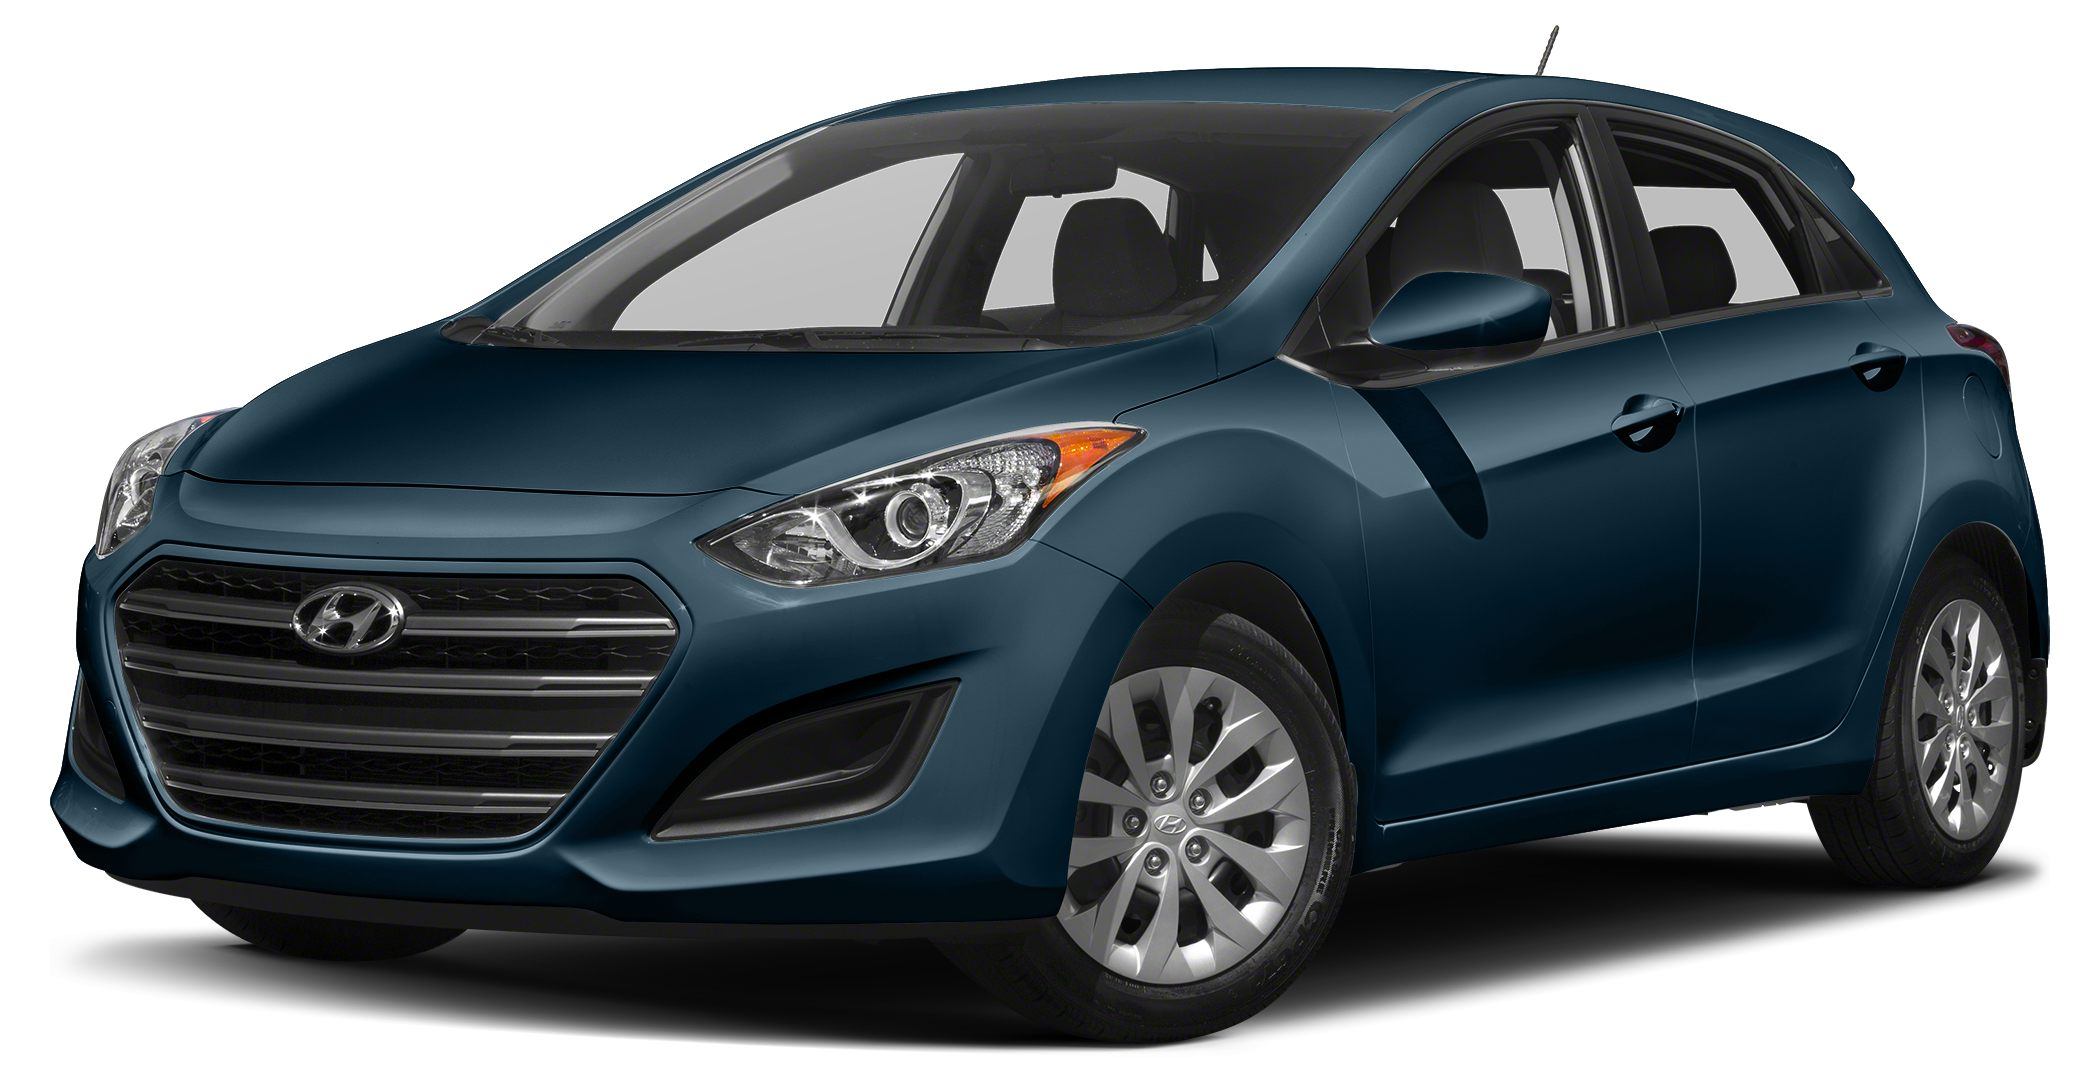 2016 Hyundai Elantra GT Base USB Port MP3- USB  I-Pod Ready ONE OWNER Clean Carfax and Lo